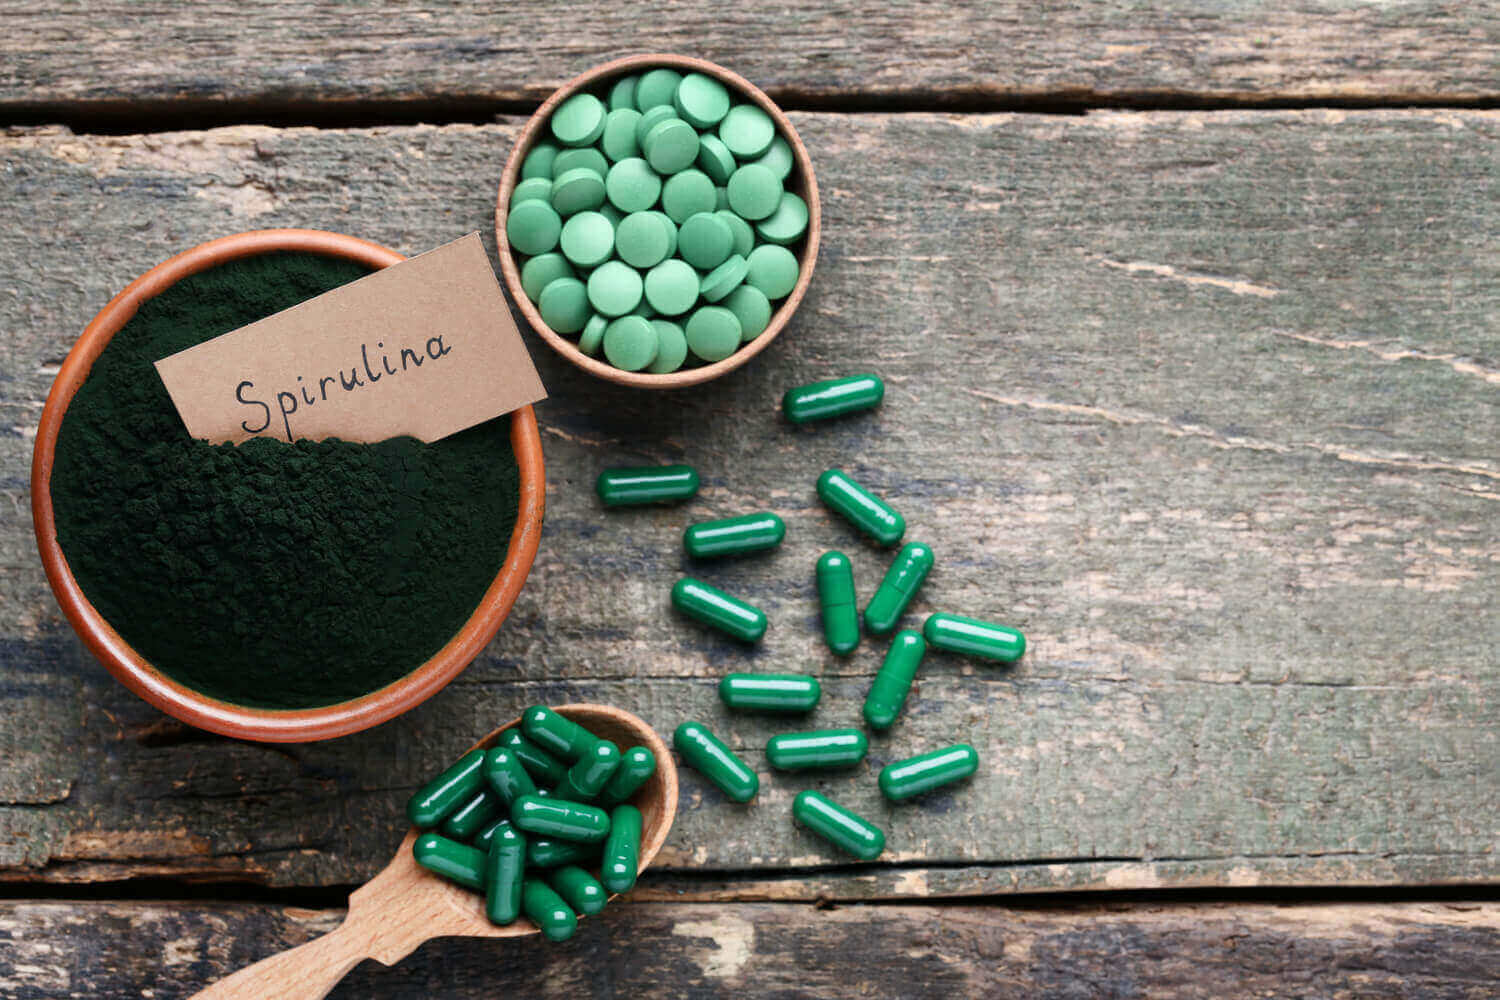 Consuming Spirulina During Pregnancy – Is It Safe?